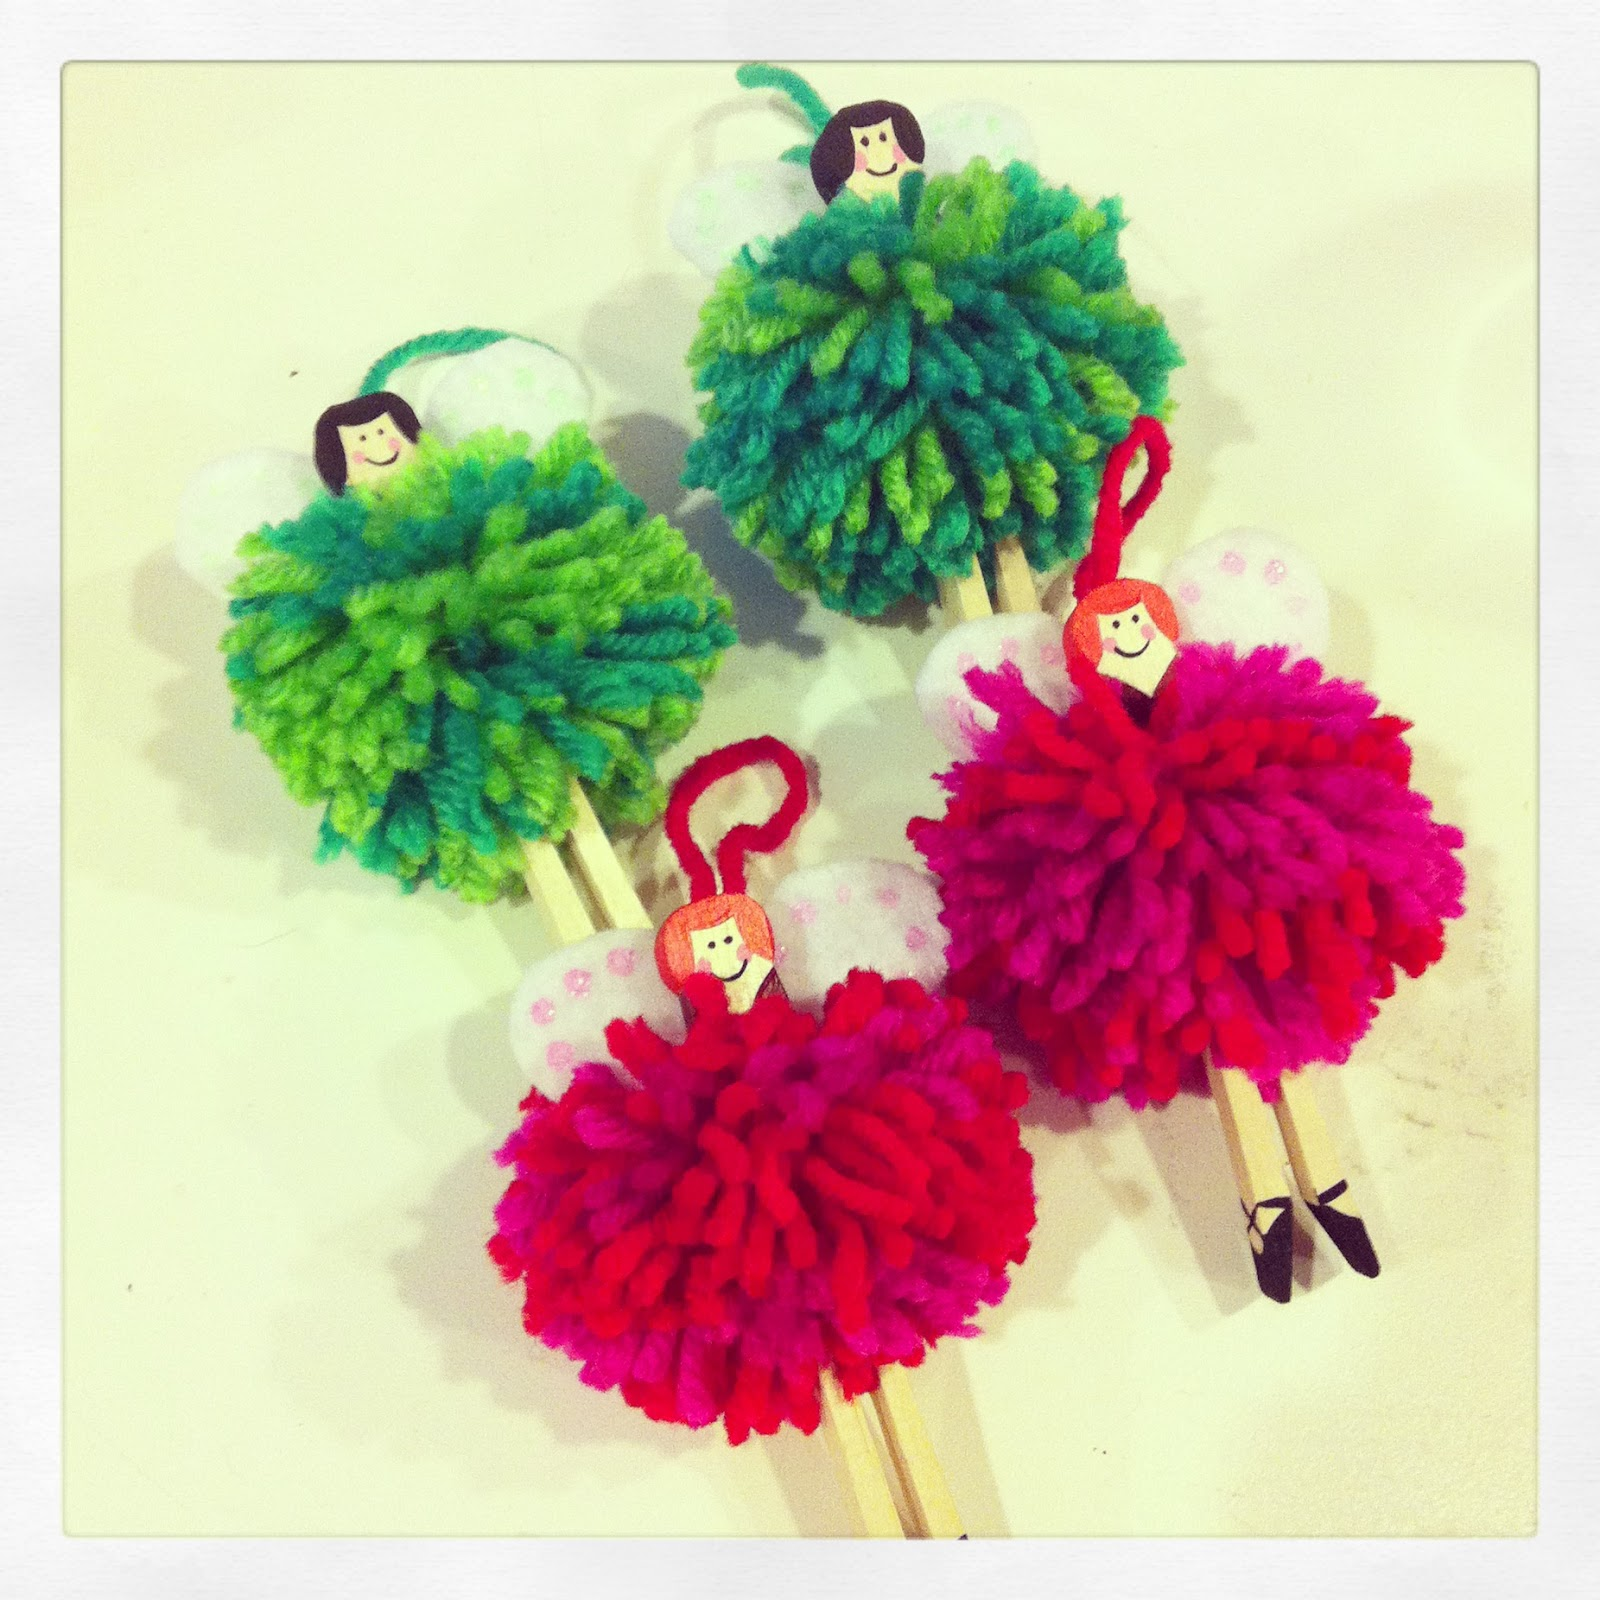 Fairy christmas ornaments - I Didn T Do Hardly Any Christmas Shopping This Year And Opted To Make Things For Friends And Family Instead In Addition To The Fairy Ornaments I Made Some